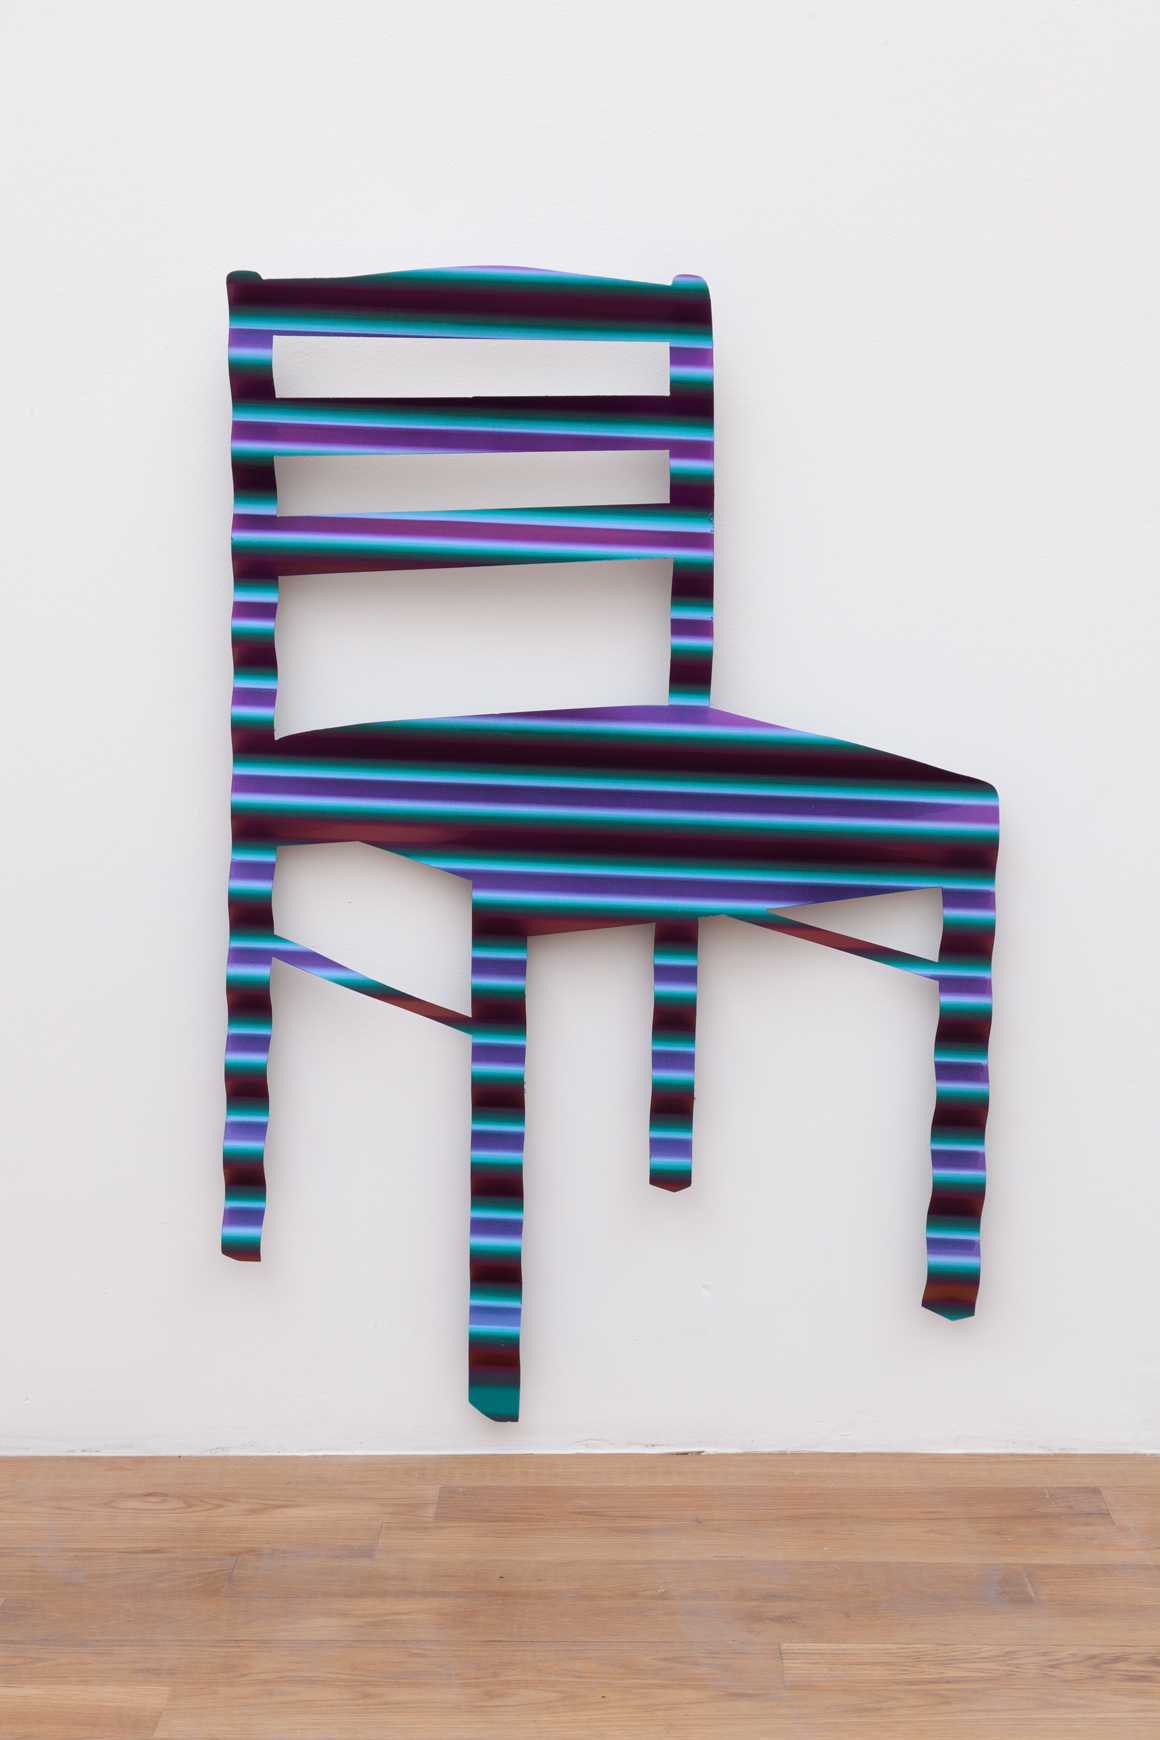 "<p><span class=""name"">Dmitri Obergfell</span><br><em>2 Chairs</em><span class='media'>Chameleon auto paint on corrugated steel</span>35 x 23 in  (88.9 x 58.4 cm)<br>x  in  (0 x 0 cm) Framed (framed)<br>2017<br><a class='inquire' href='mailto:info@gildargallery.com?subject=Artwork Inquiry DOBE0028&body=I am interested in finding out more about 2 Chairs by Dmitri Obergfell'>Inquire</a></p>"